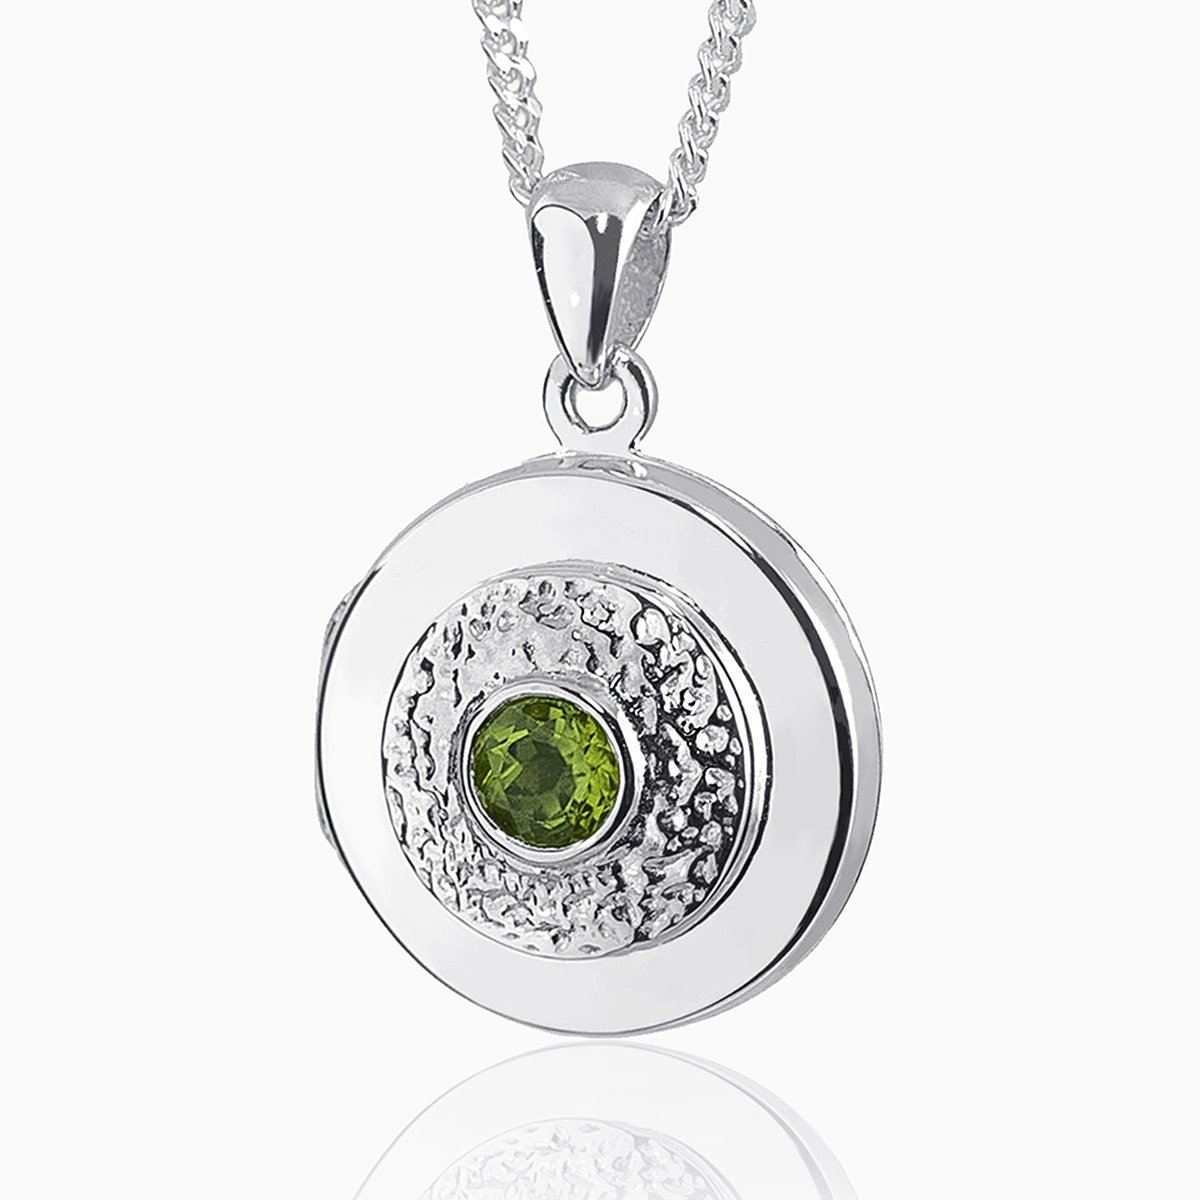 Product title: Contemporary White Gold Peridot Locket, product type: Locket